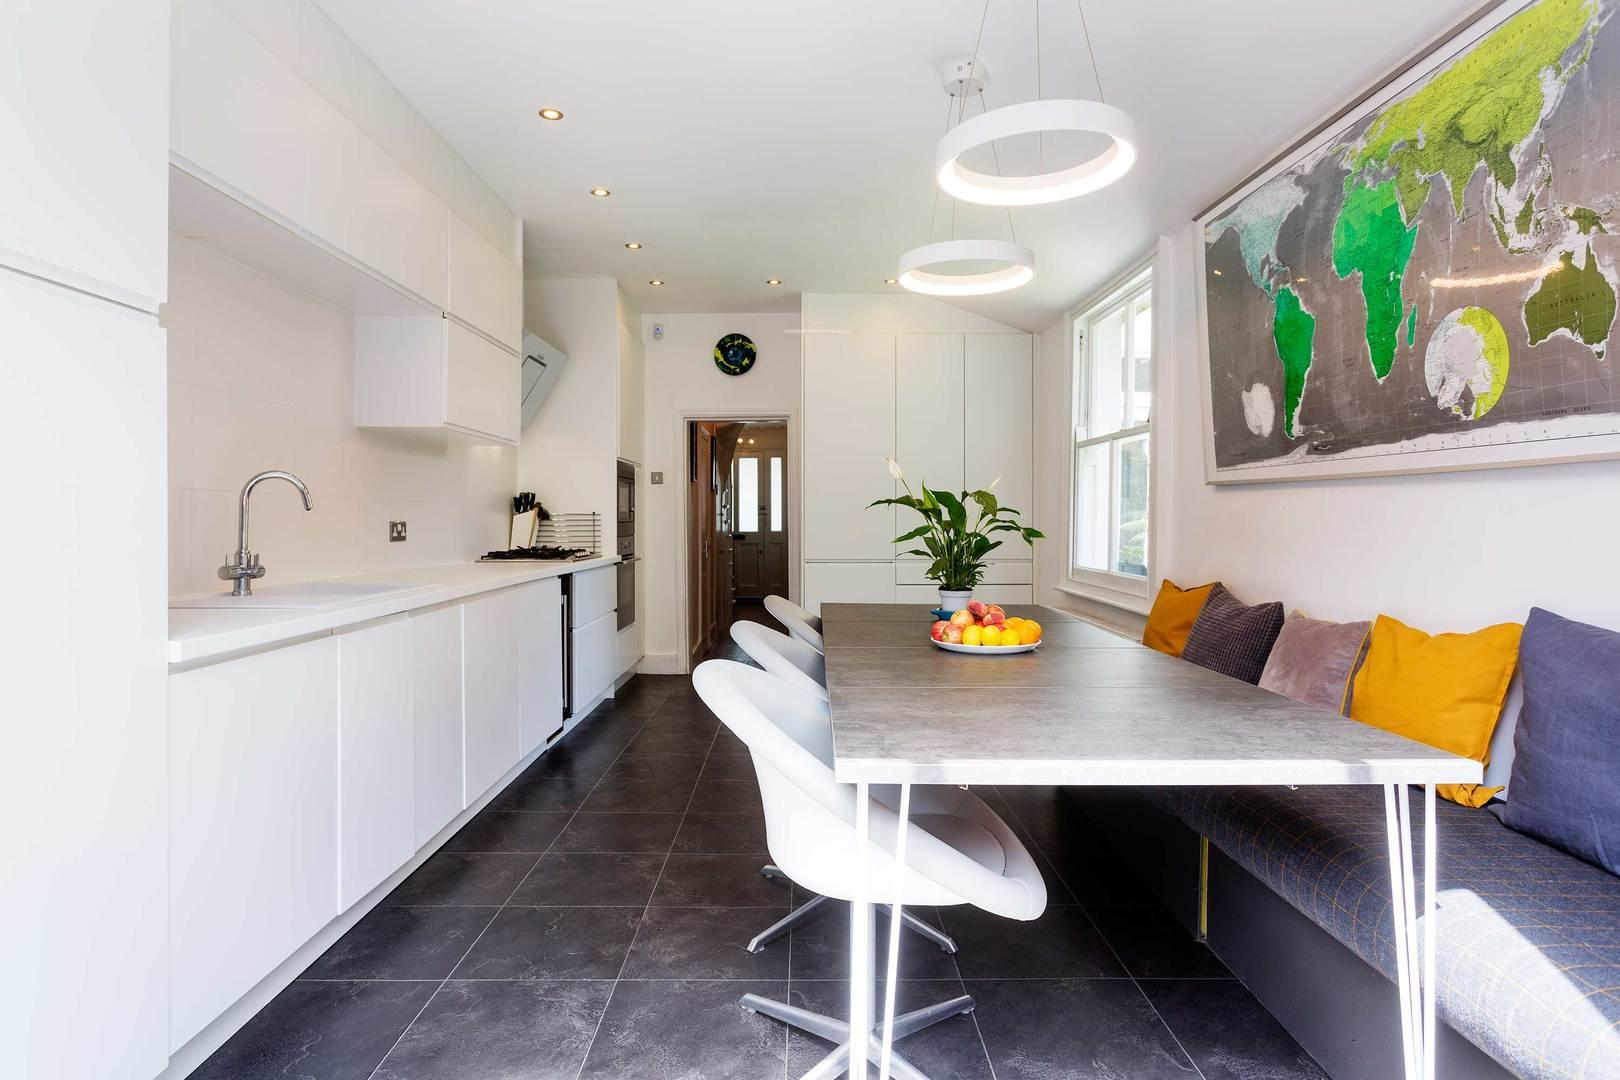 Property Image 1 - Attractive Modern Greenwich Home with Garden Studio